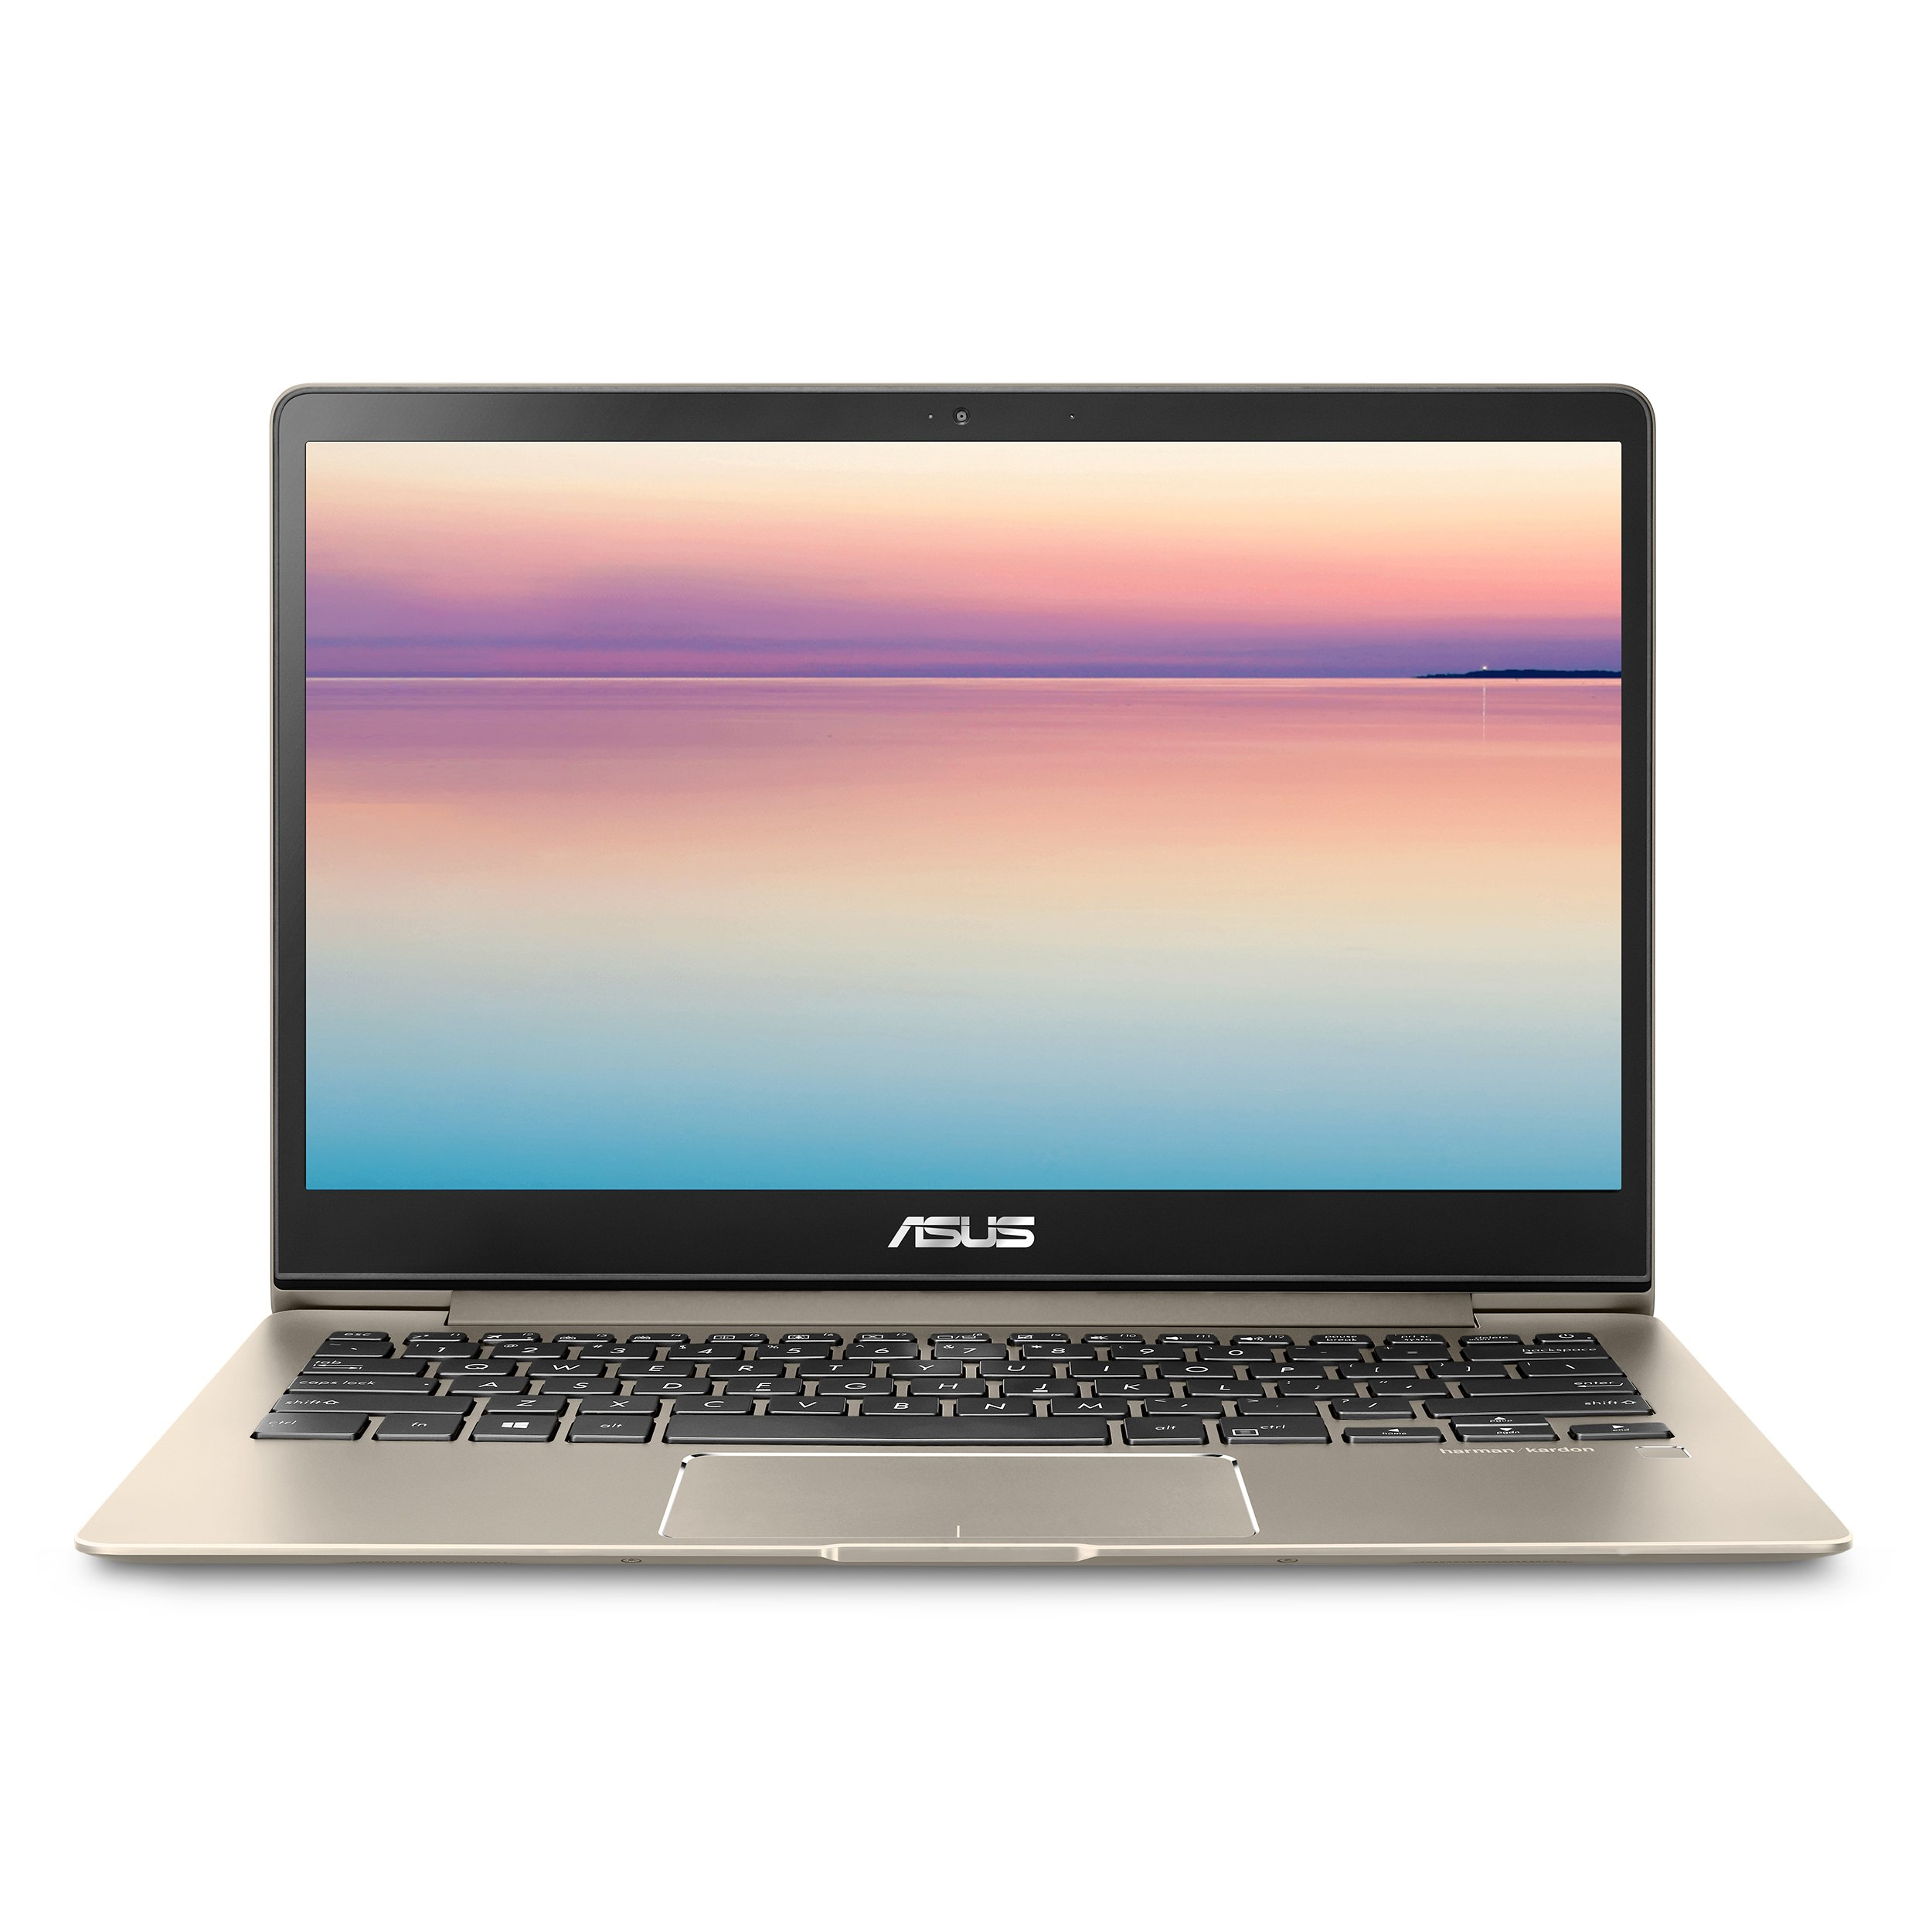 ASUS ZenBook 13 Ultra-Slim Laptop 13.3'' FHD Display, Intel 8th gen Core i5-8250U, 8GB RAM, 256GB M.2 SSD, Win10, Backlit KB, FP, Icicle Gold, UX331UA-AS51 by ASUS (Image #6)